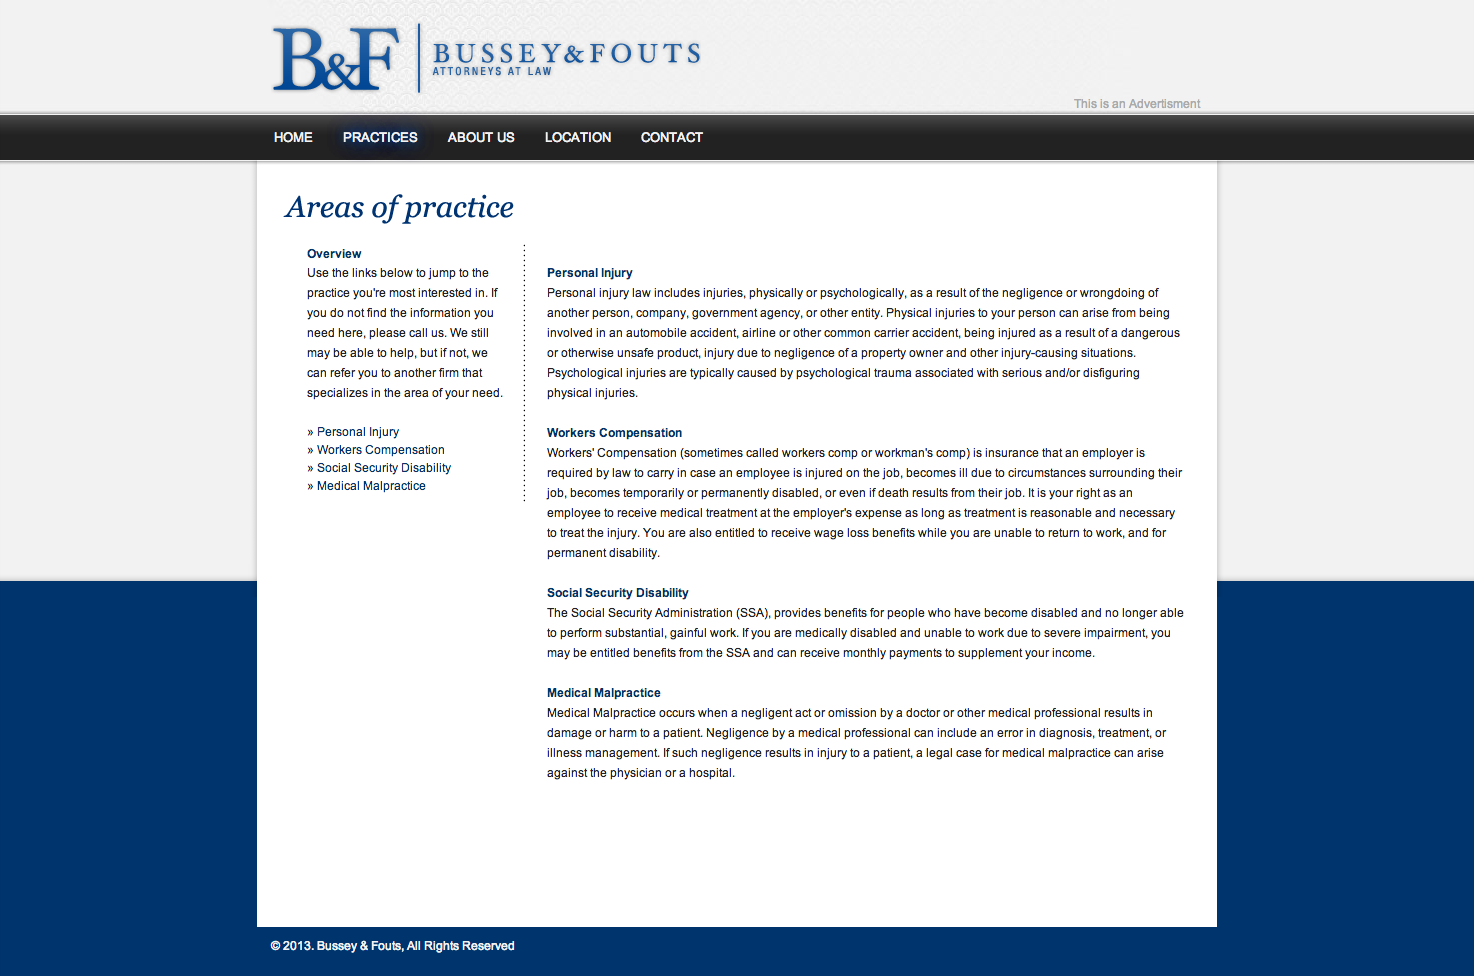 Areas of practice page for Bussey and Fouts